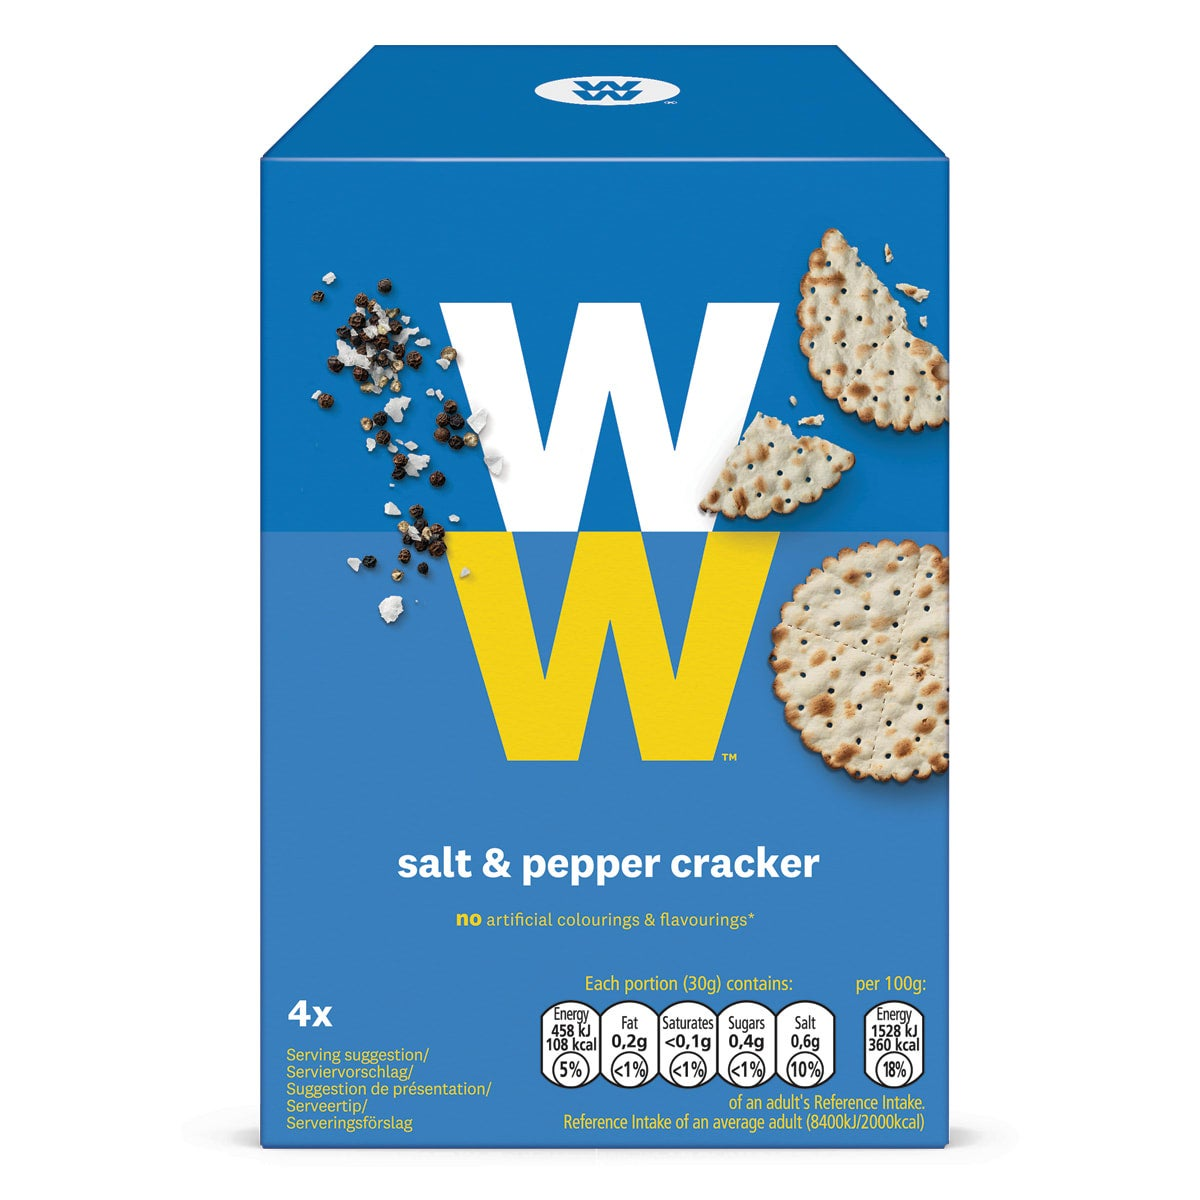 WW Salt and Pepper Crackers, crunchy wheat, on their own or with a favourite topping, 3 SmartPoints per 30g portion, suitable for vegans